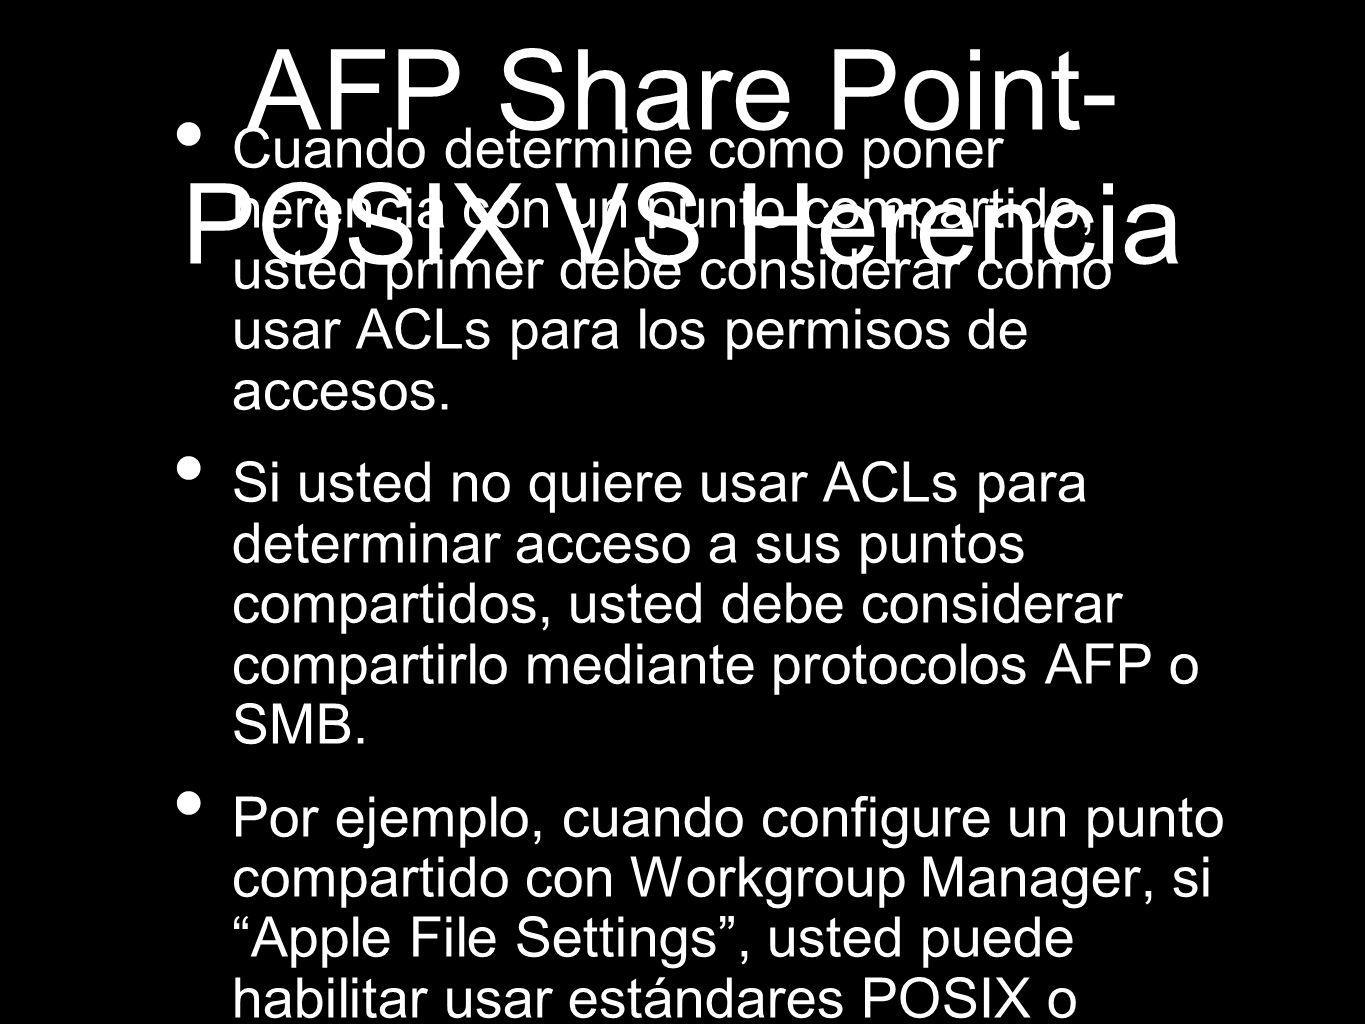 AFP Share Point-POSIX VS Herencia